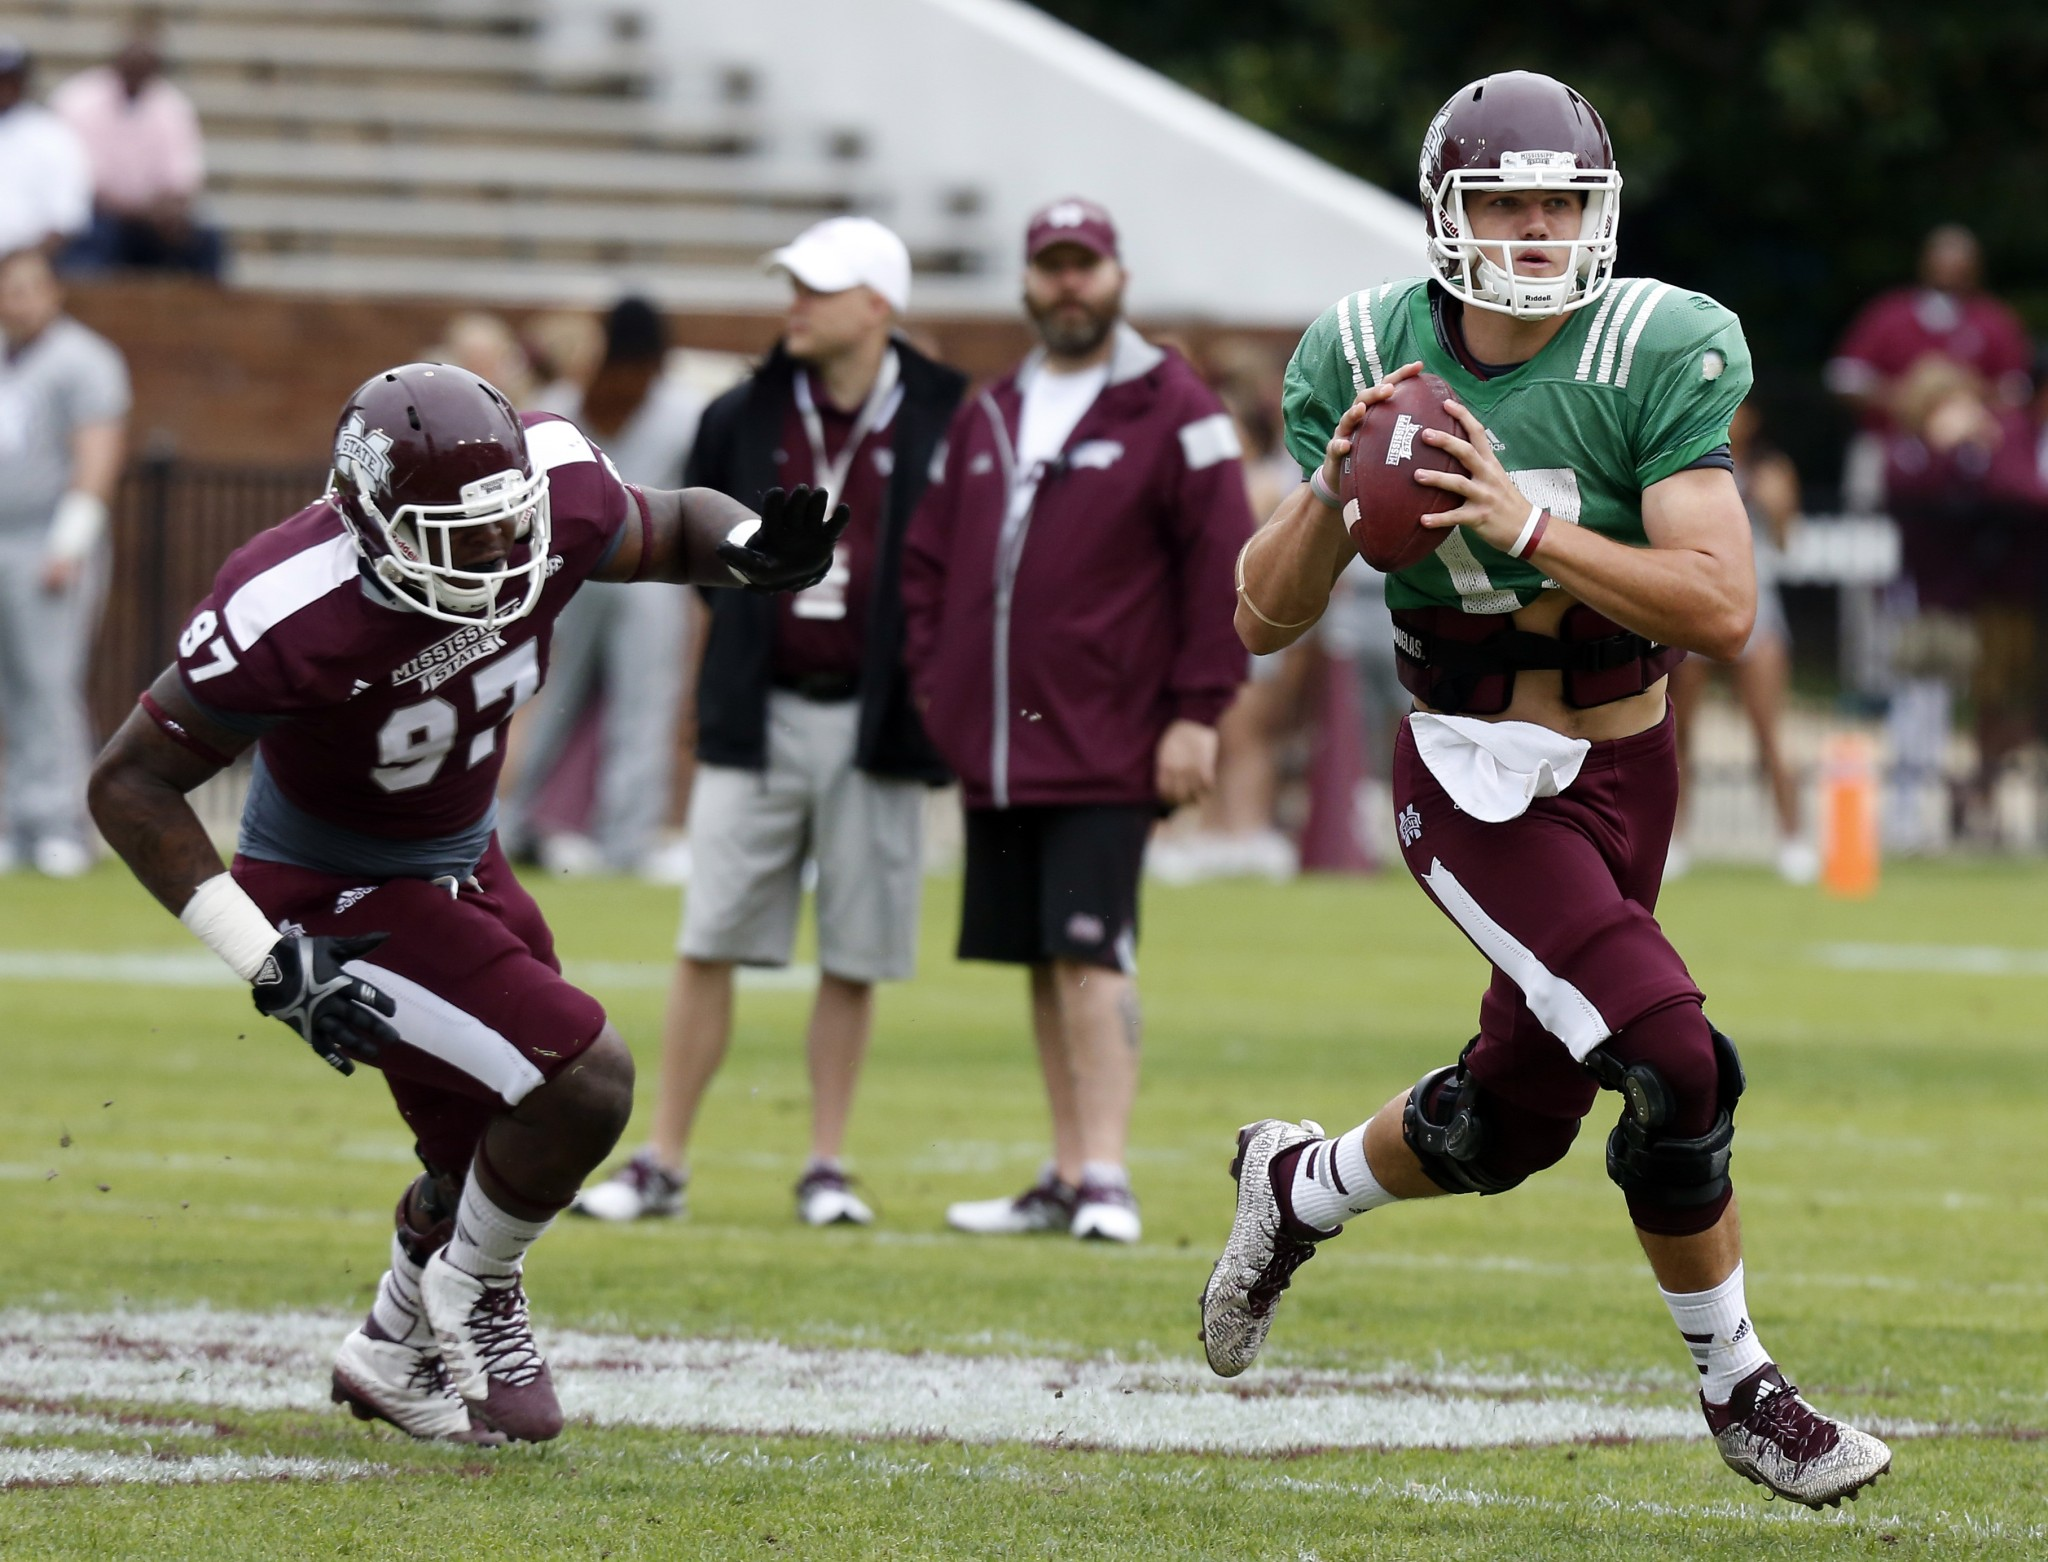 Mississippi State White Team quarterback Nick Fitzgerald (17) looks for an open receiver as Maroon Team defensive lineman Johnathan Calvin (97) closes in during their spring NCAA college football game, Saturday, April 18, 2015, in Starkville, Miss. White won 28-24. (AP Photo/Rogelio V. Solis)